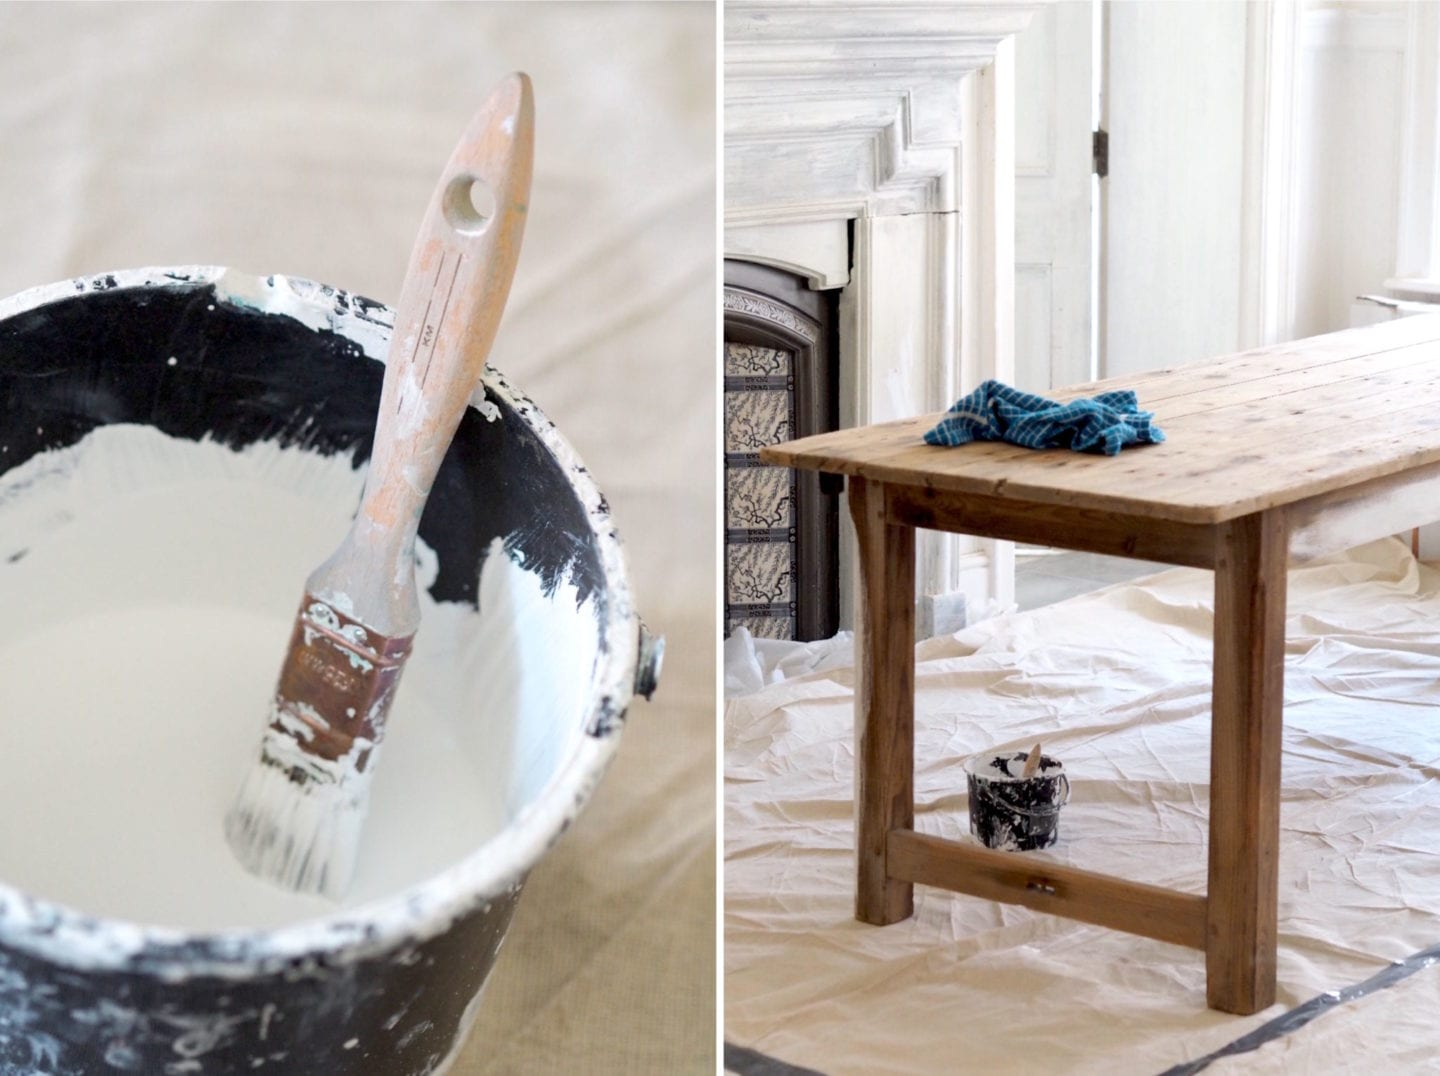 antique table project DIY French kitchen table farmhouse harris brushes painting